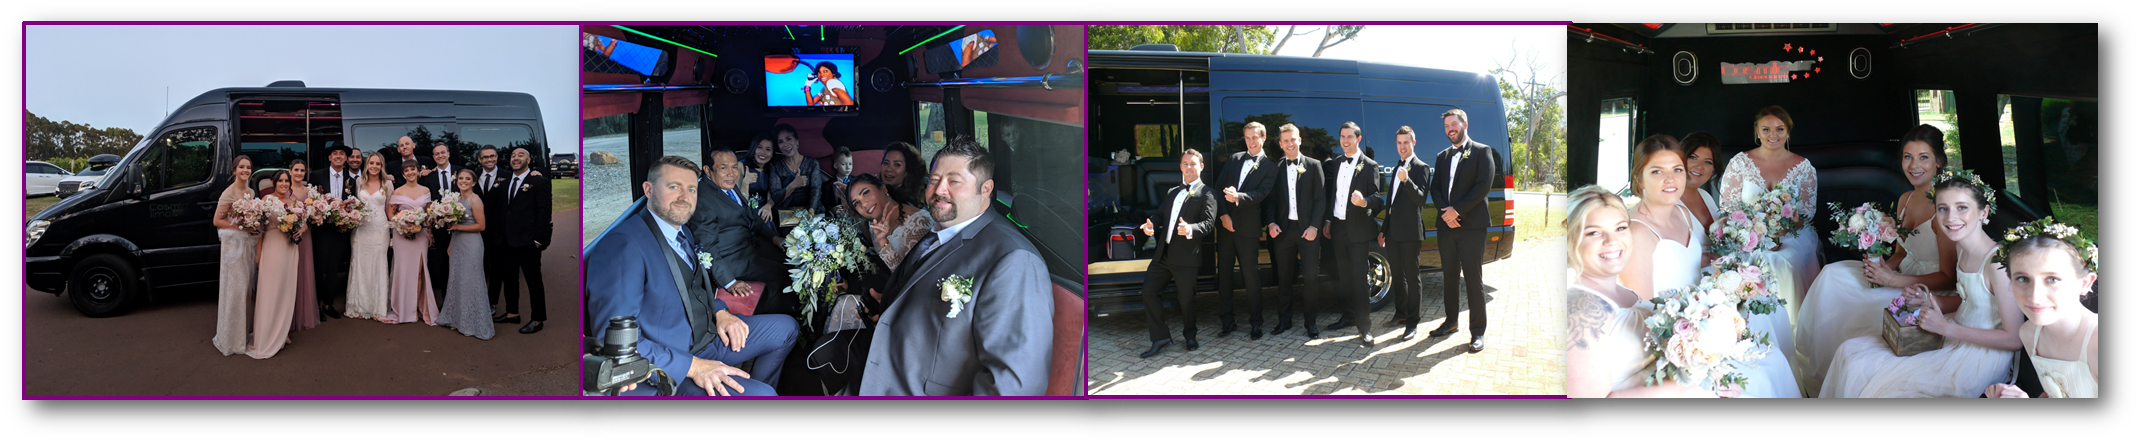 Wedding Transport Limousine